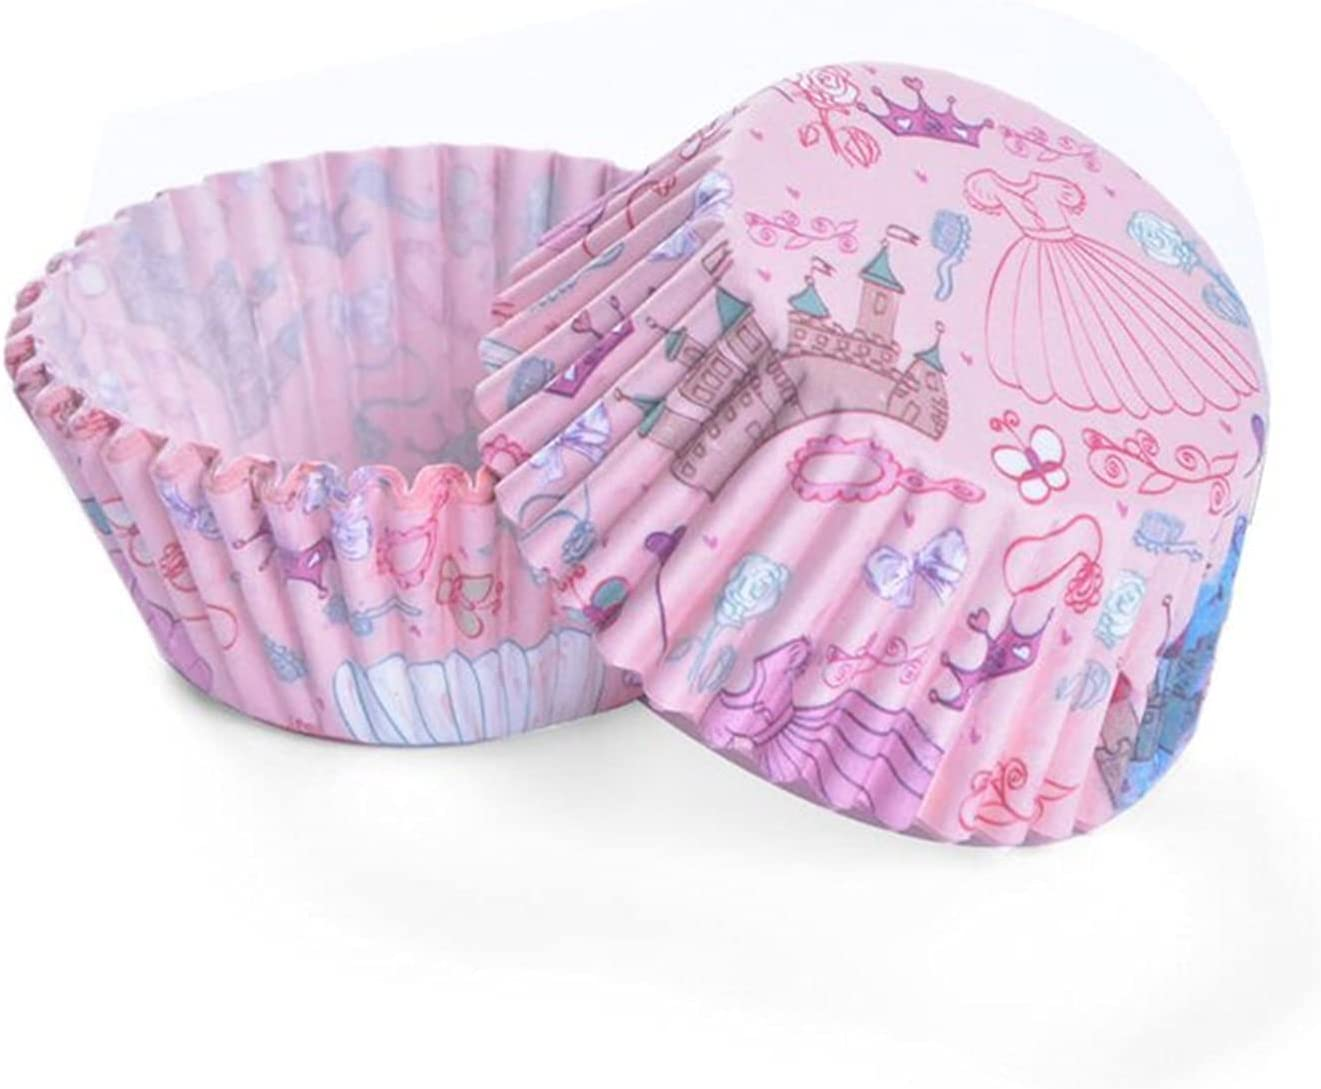 Pastry Cup Outstanding 100pcs Grease-Proof Cake Muffin Cups Memphis Mall Paper Liner